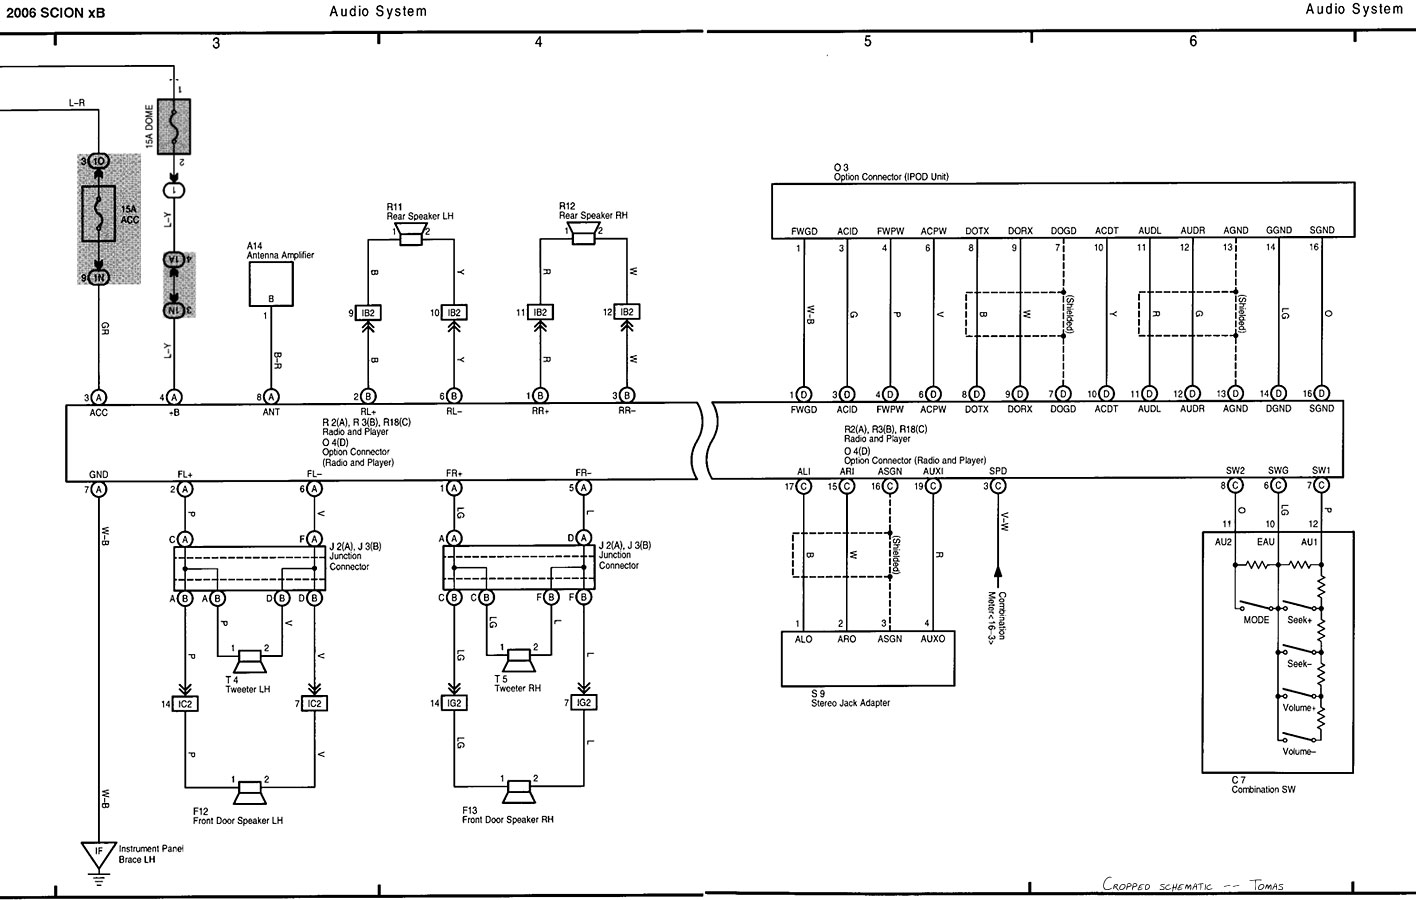 Scion Xd Stereo Wiring Diagram Schematic Home Diagrams 2011 Xb Onkyo